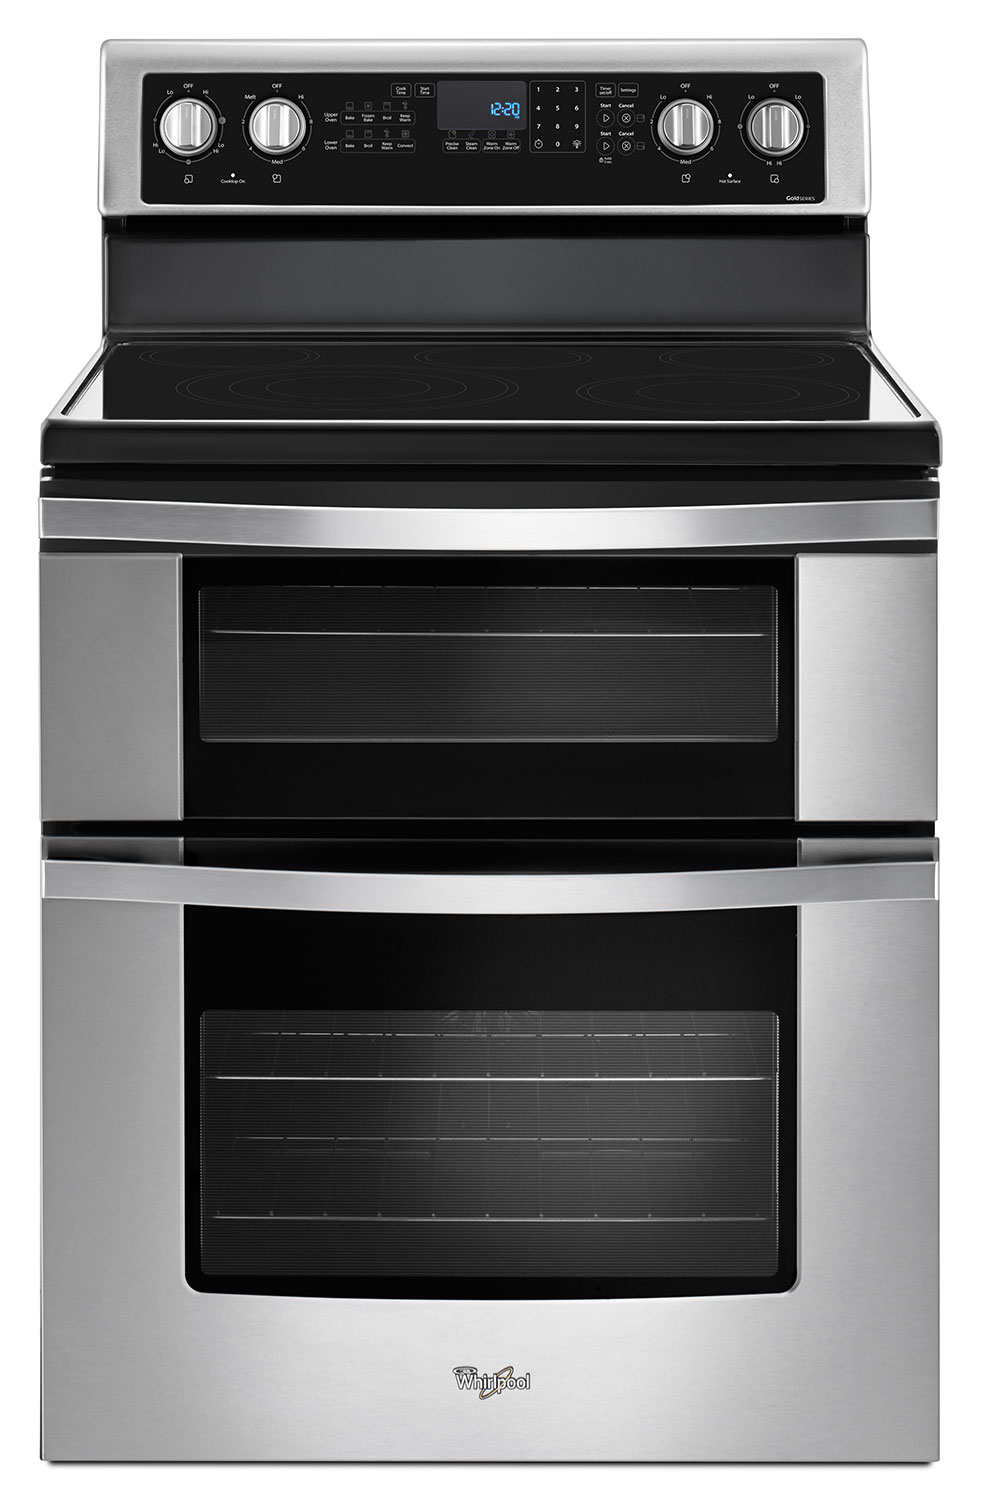 Cooking Products - Whirlpool® 6.7 Cu. Ft. Electric Double Oven Range with True Convection